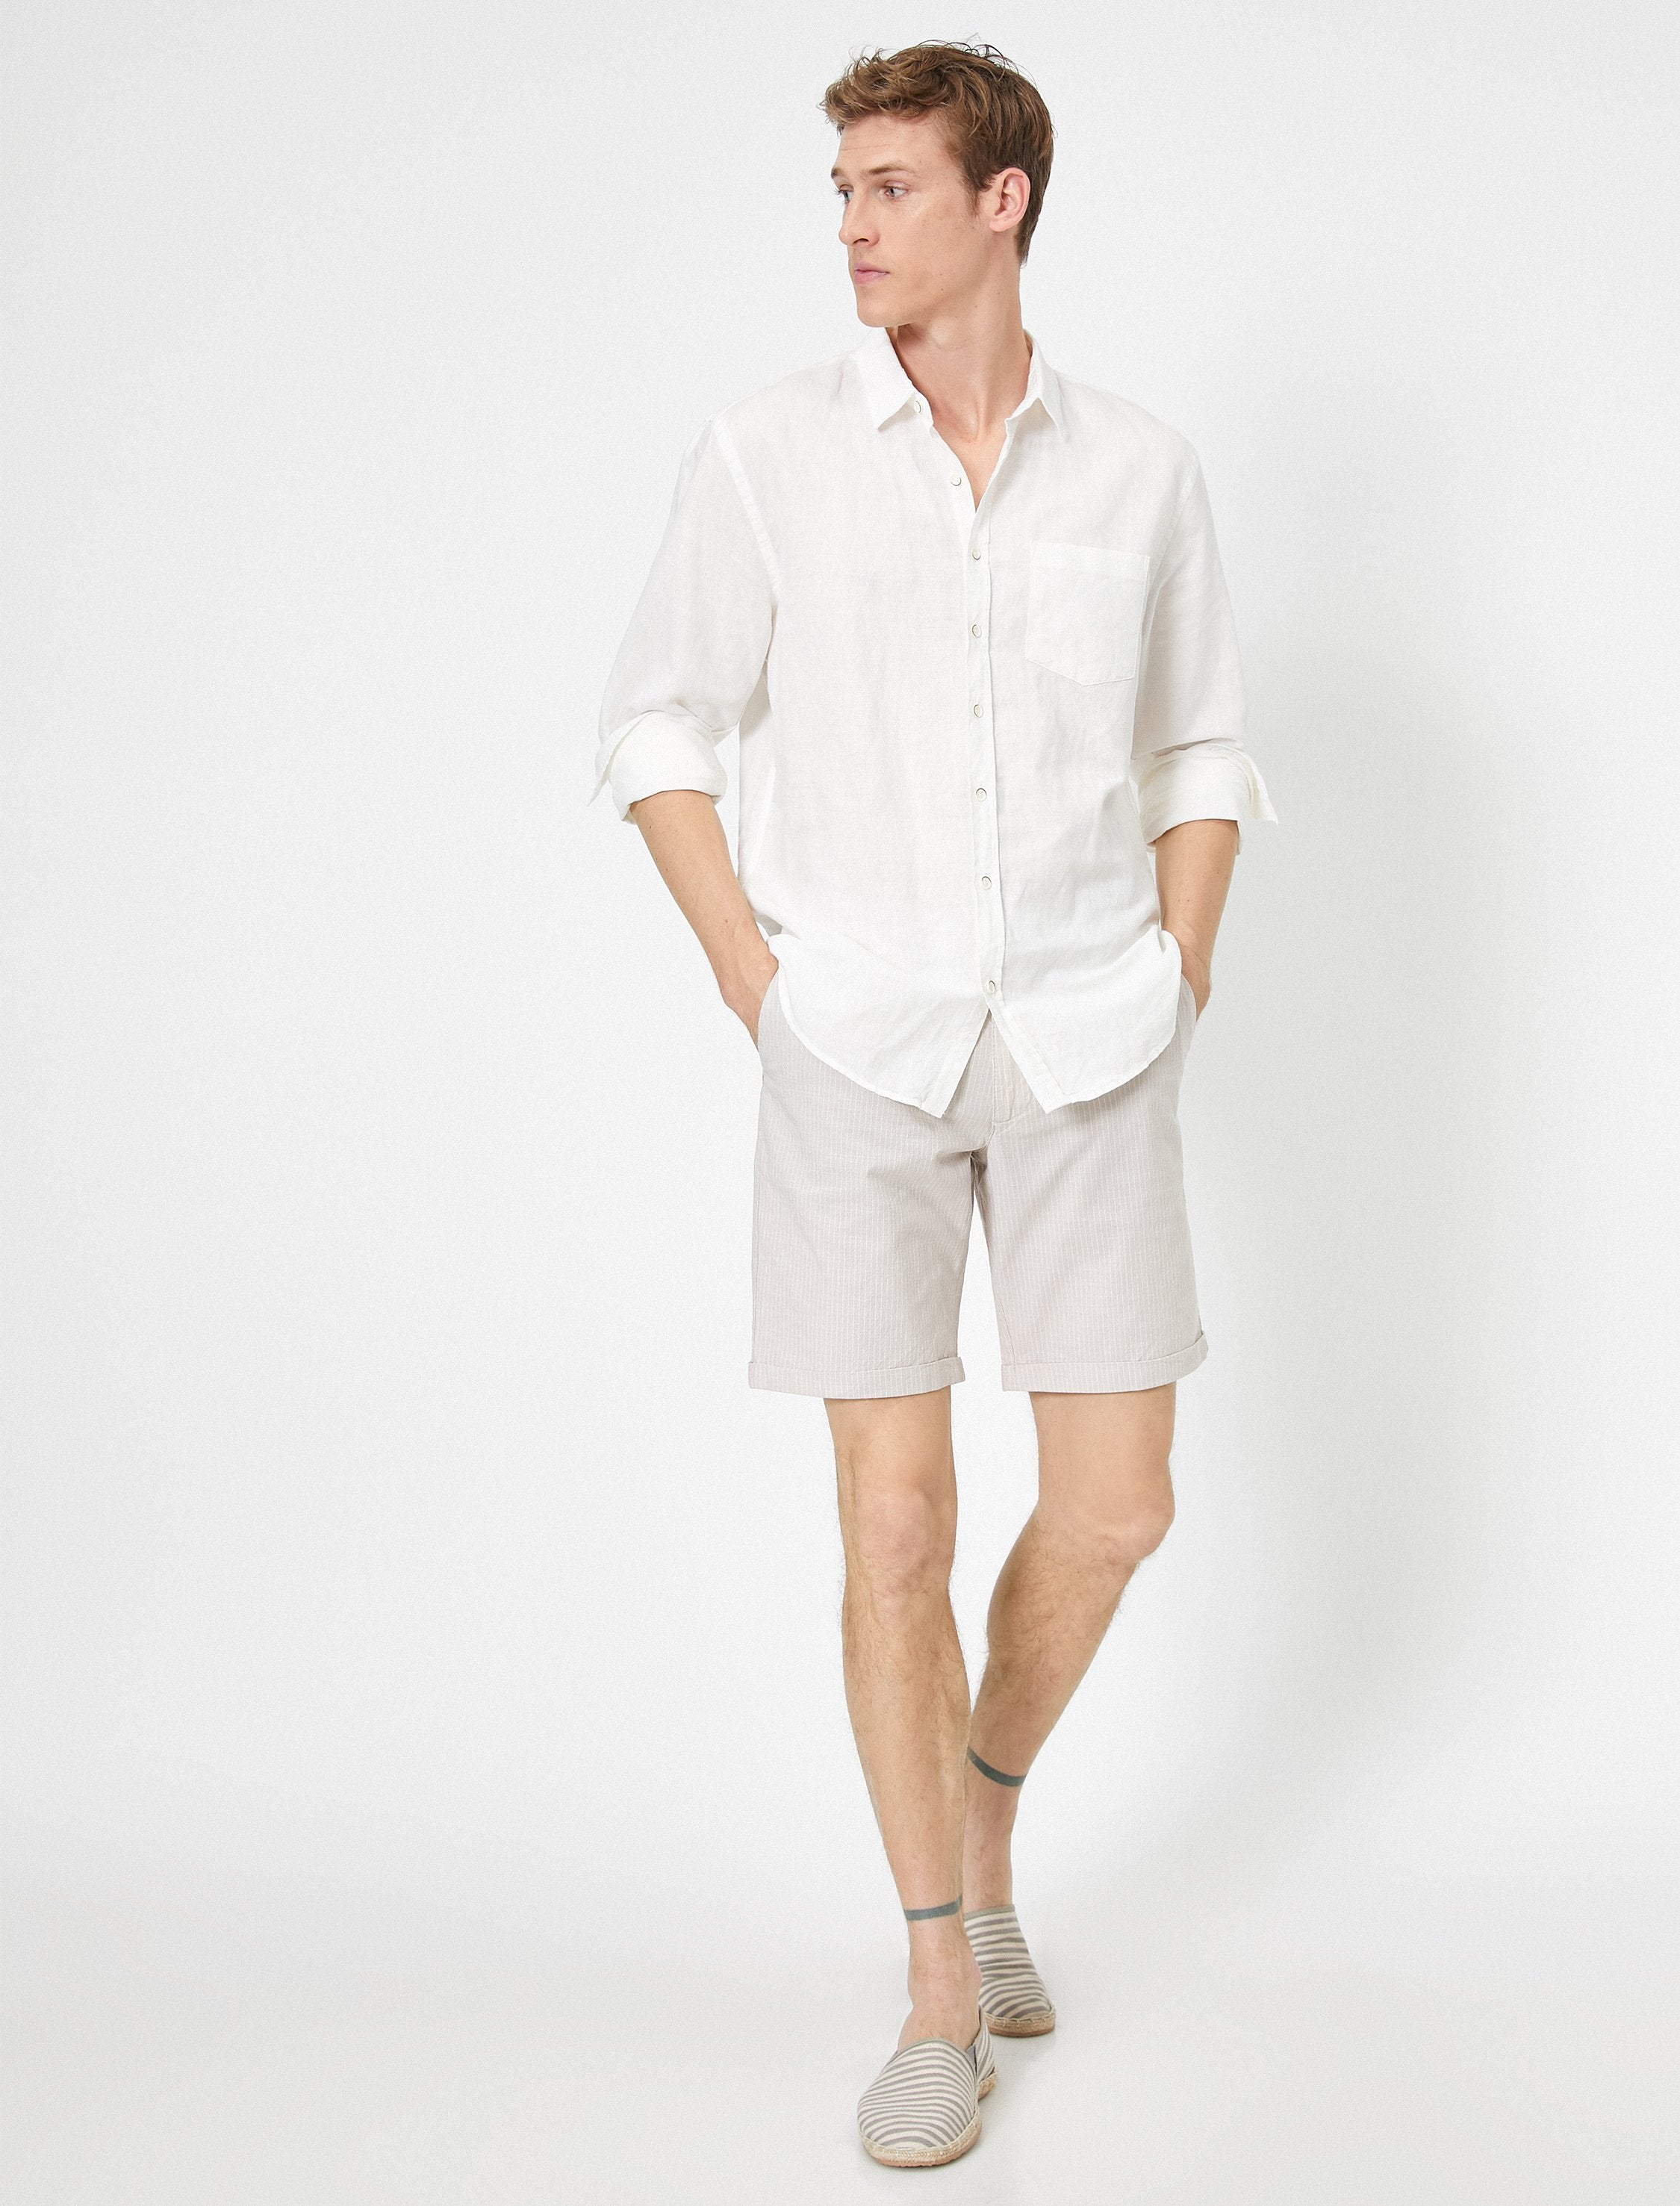 Natural Look Chino Shorts in Sand